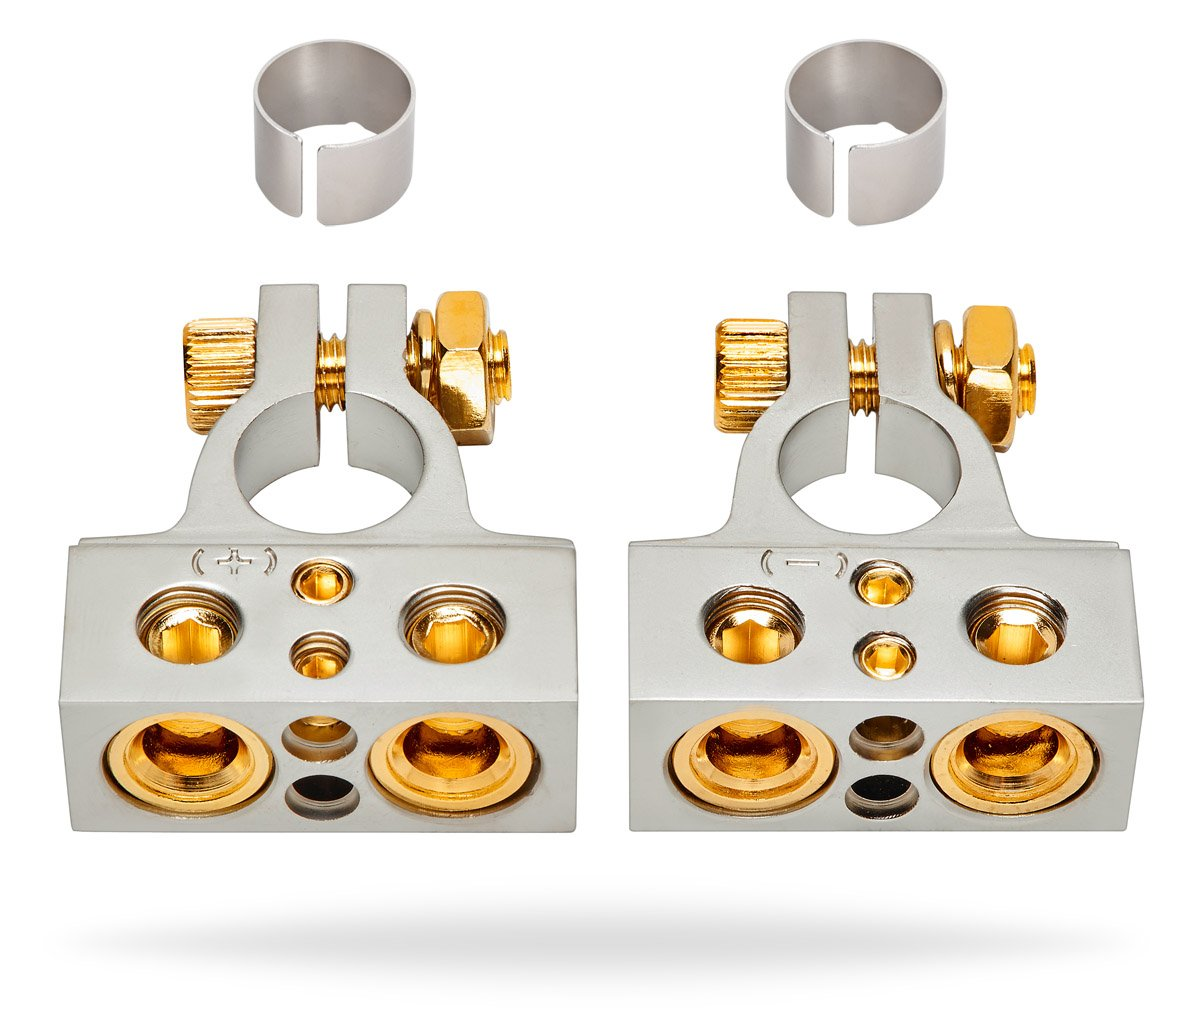 InstallGear 0/4/8 or 10 Gauge Battery Terminals with Shims - Positive and Negative (+/-)